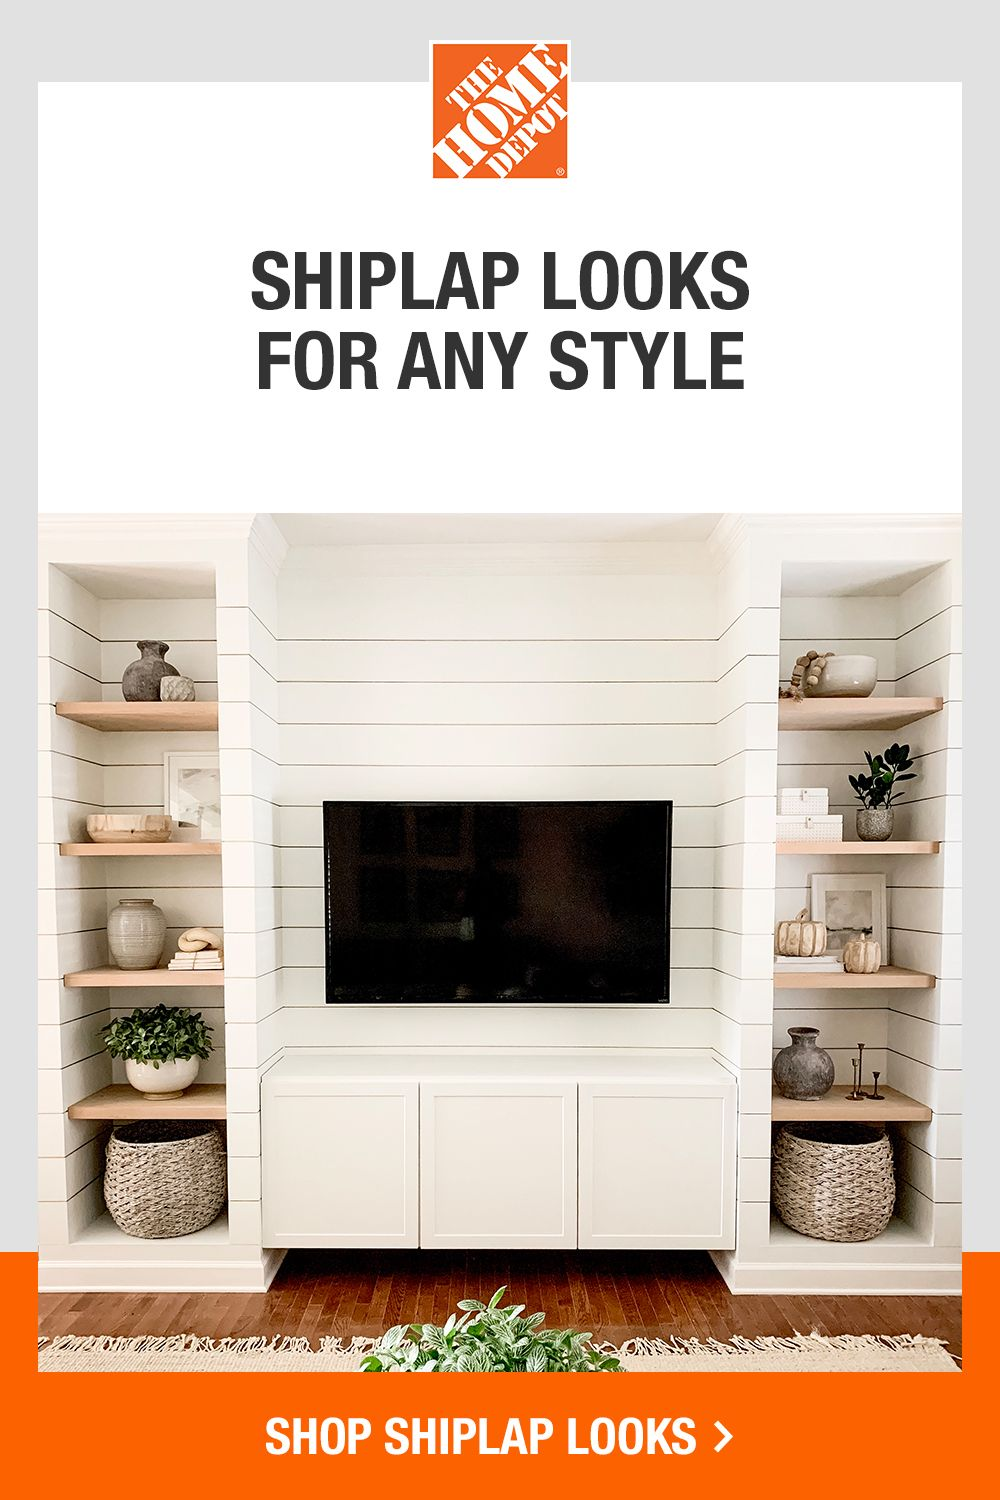 Get your shiplap look done right at The Home Depot. Find easy how-to guides to help with your DIY project; get tool rentals and all the supplies you need to completely refresh your space. Tap to shop shiplap looks at The Home Depot.